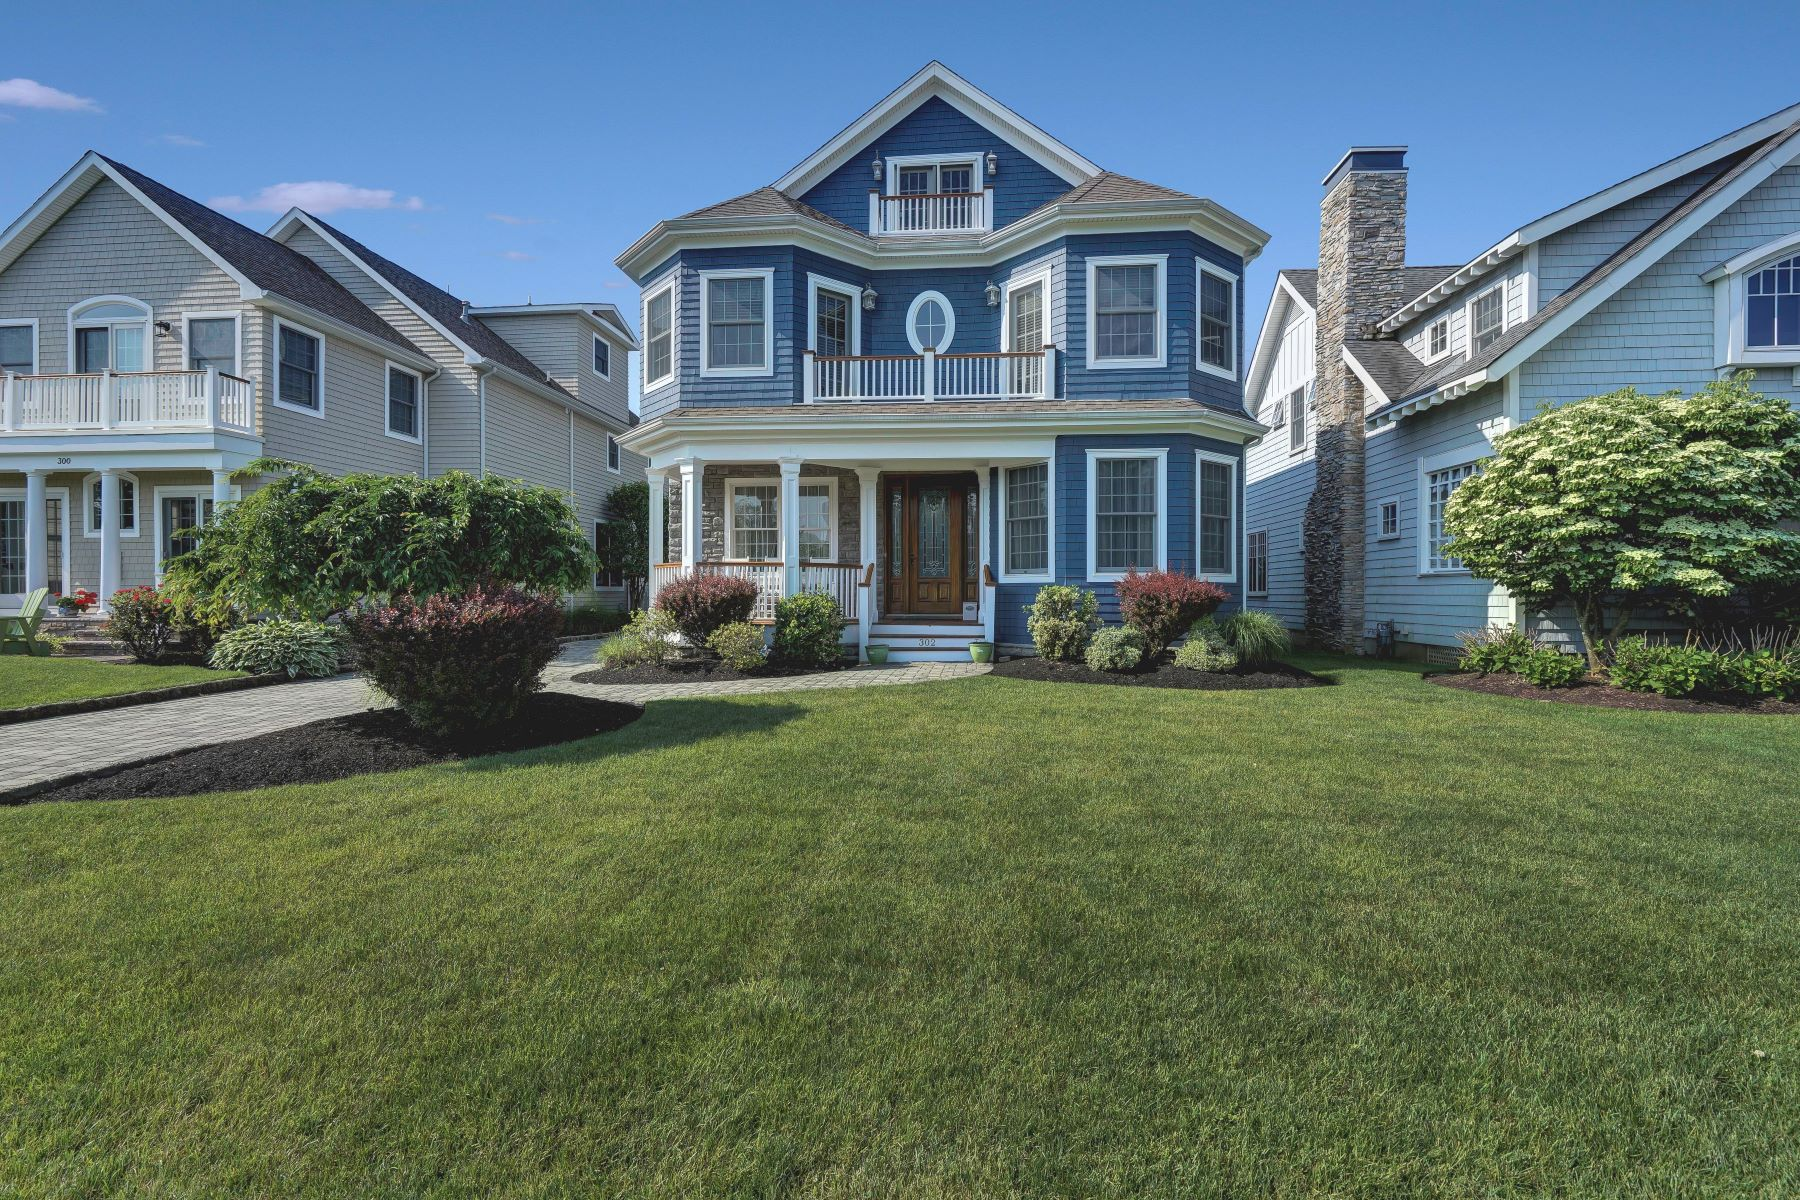 Single Family Homes for Sale at Casual Elegance 302 Beacon Boulevard Sea Girt, New Jersey 08750 United States